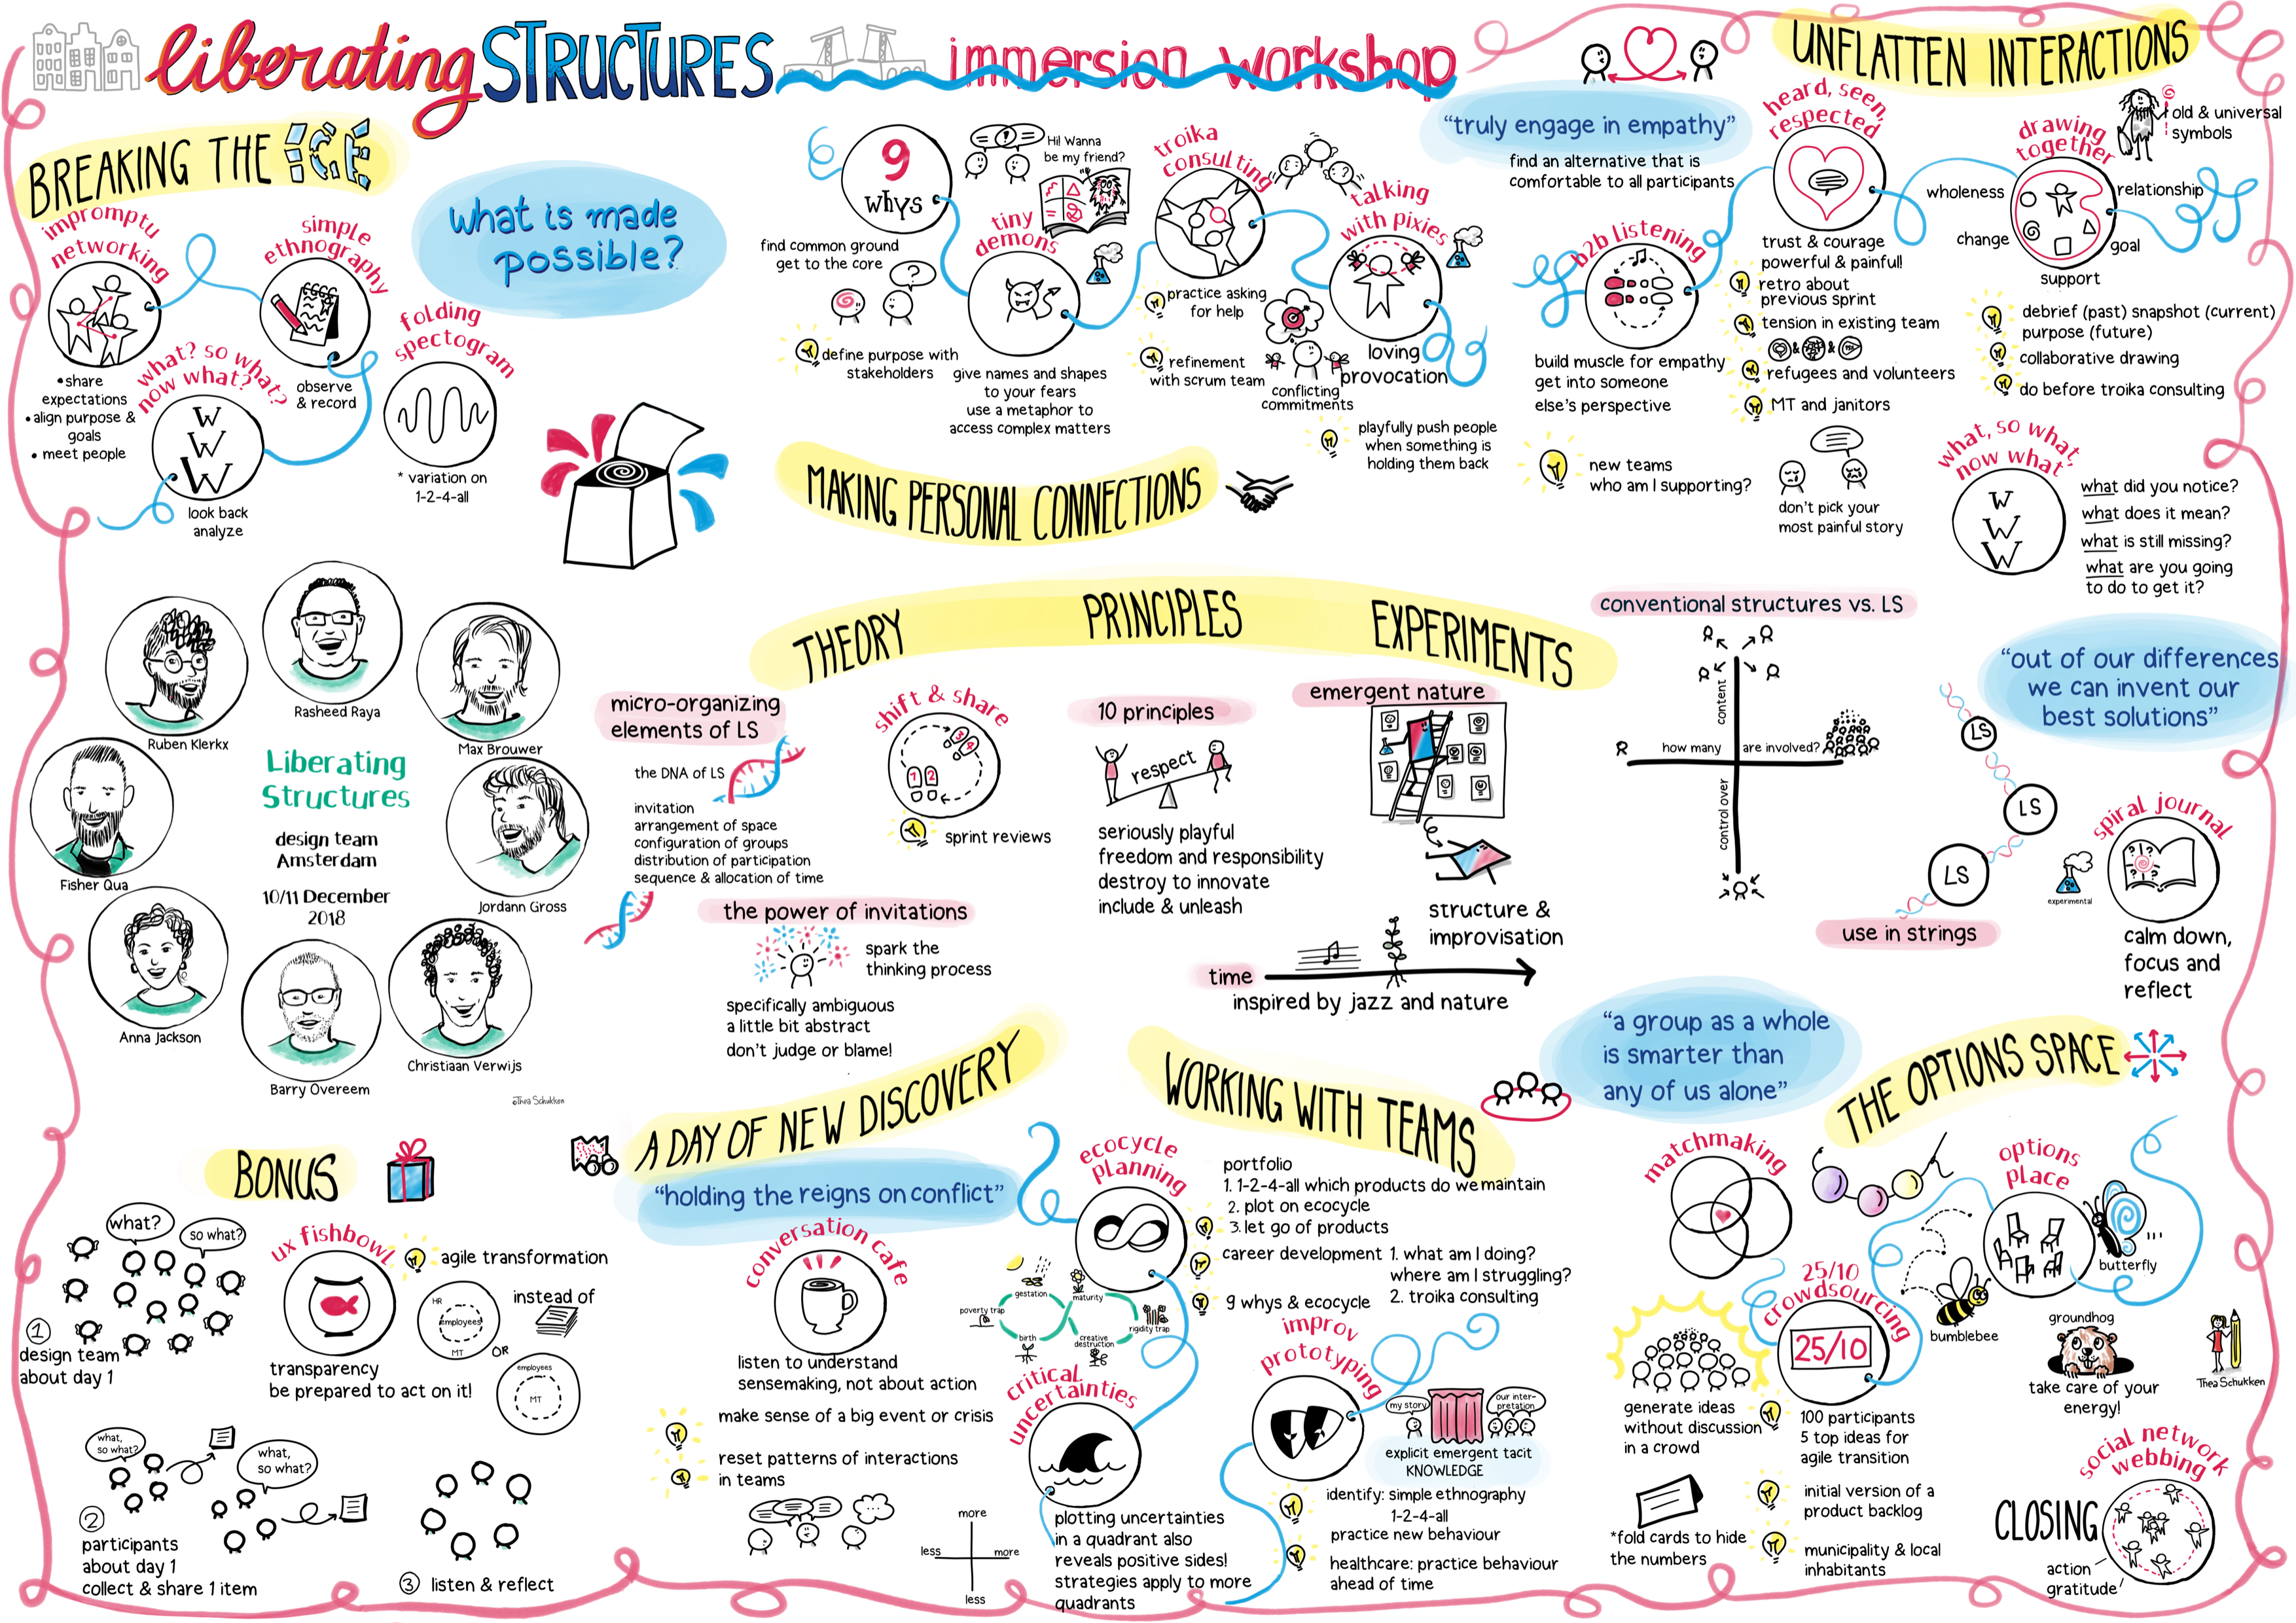 Thea Schukken's awesome visual of the immersion workshop